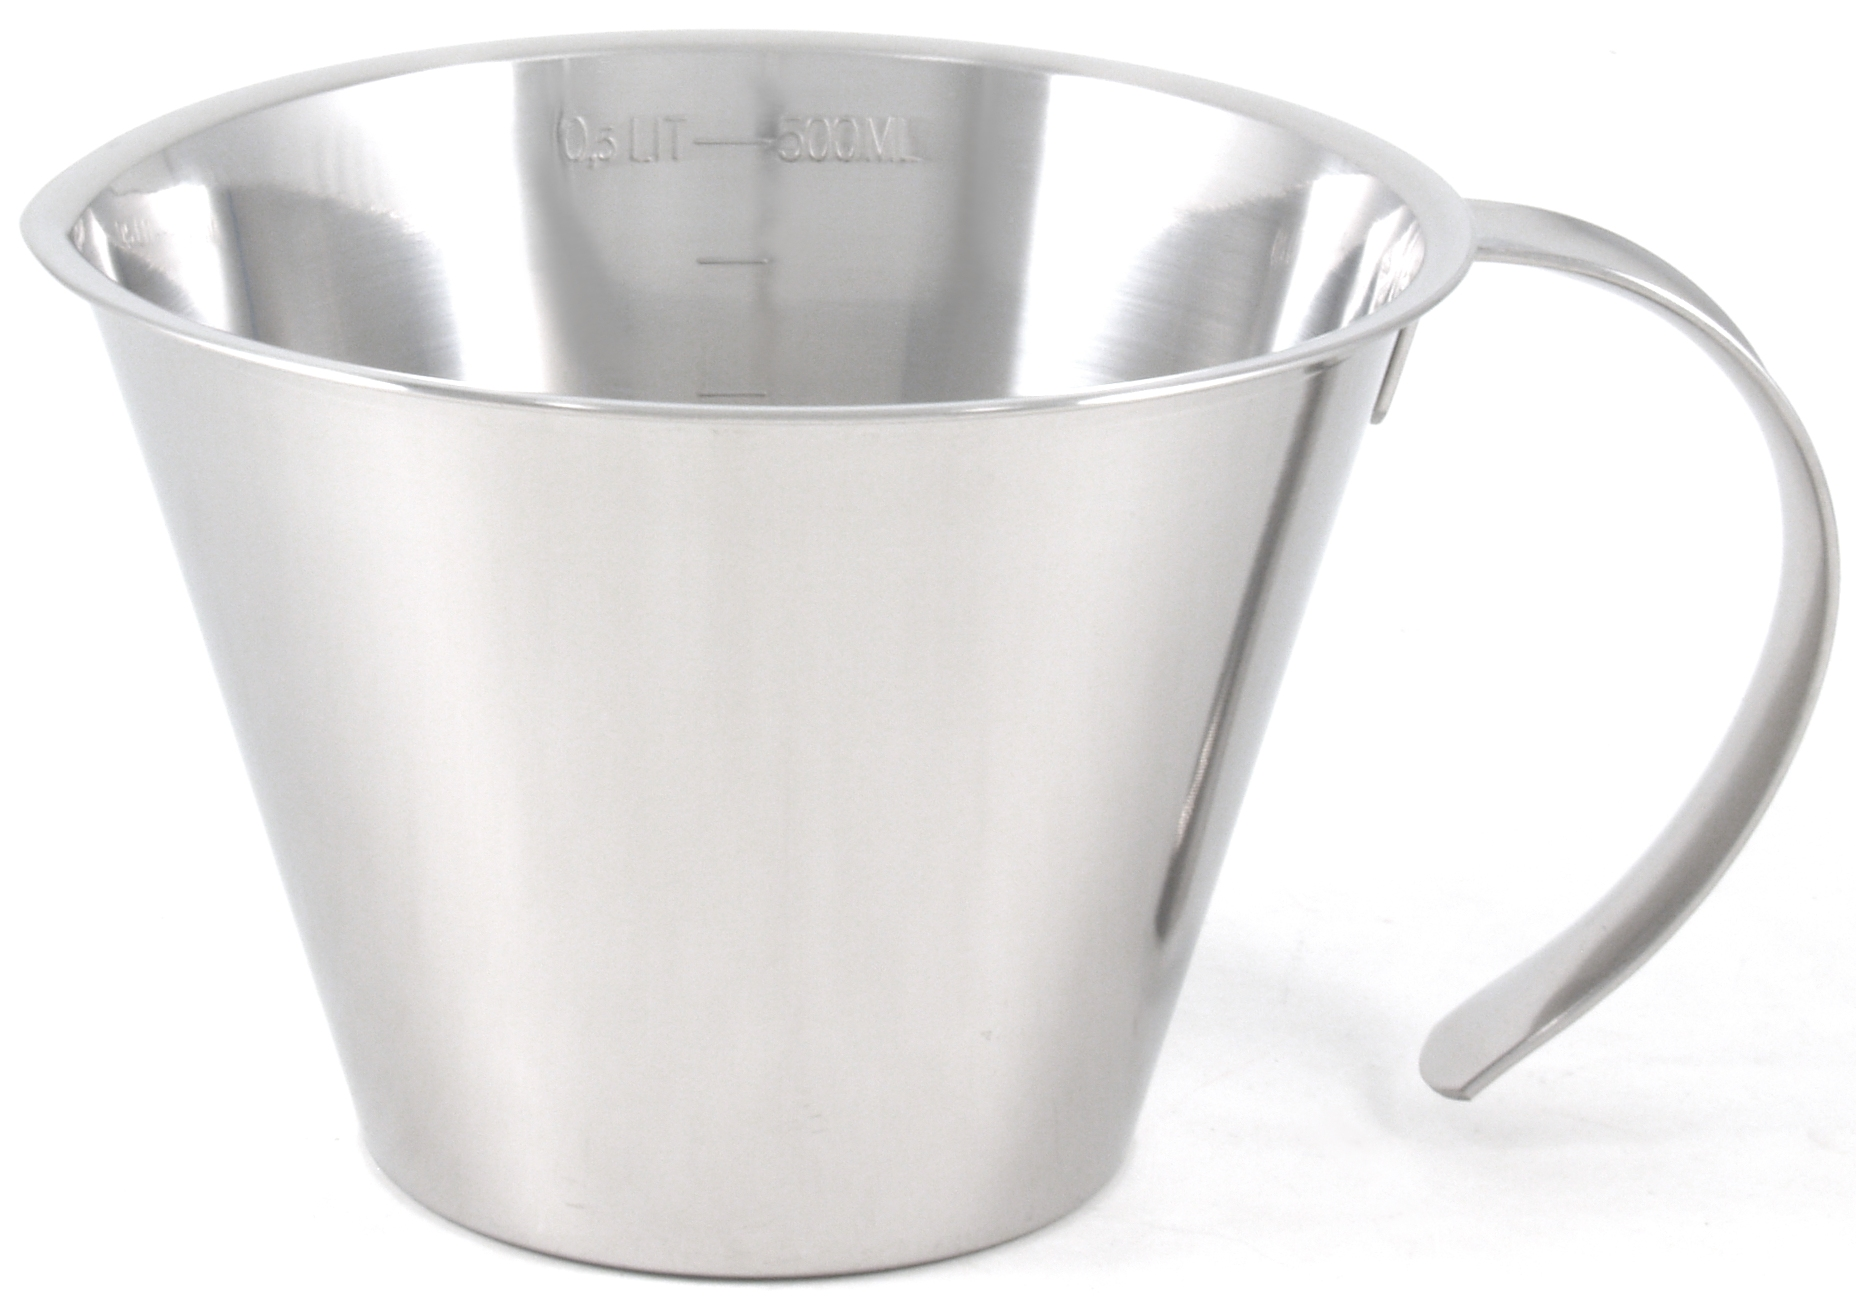 Linden Sweden 2 Cup Stainless Steel Measuring Cup